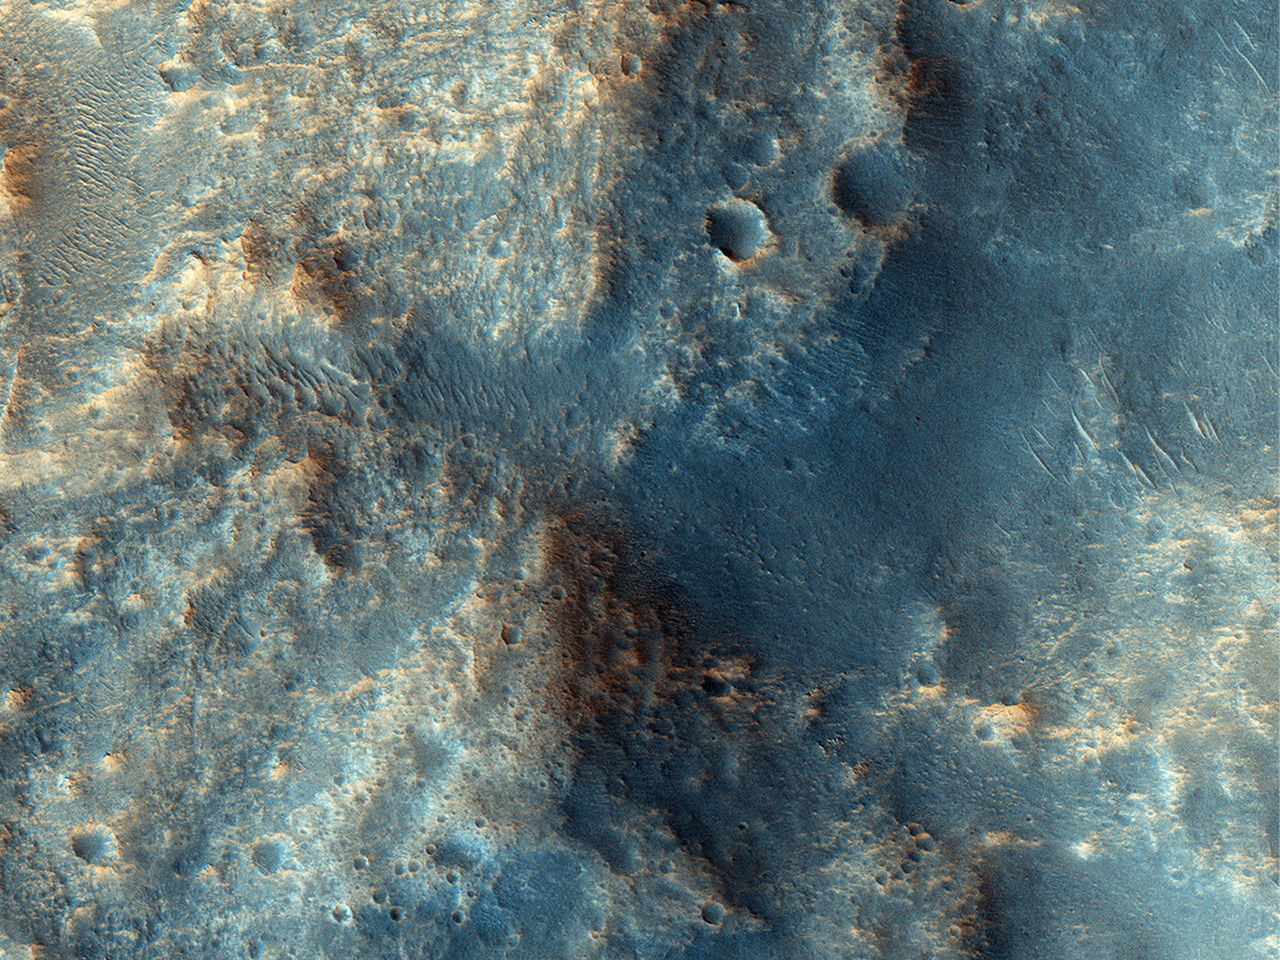 A Plateau in Ares Vallis